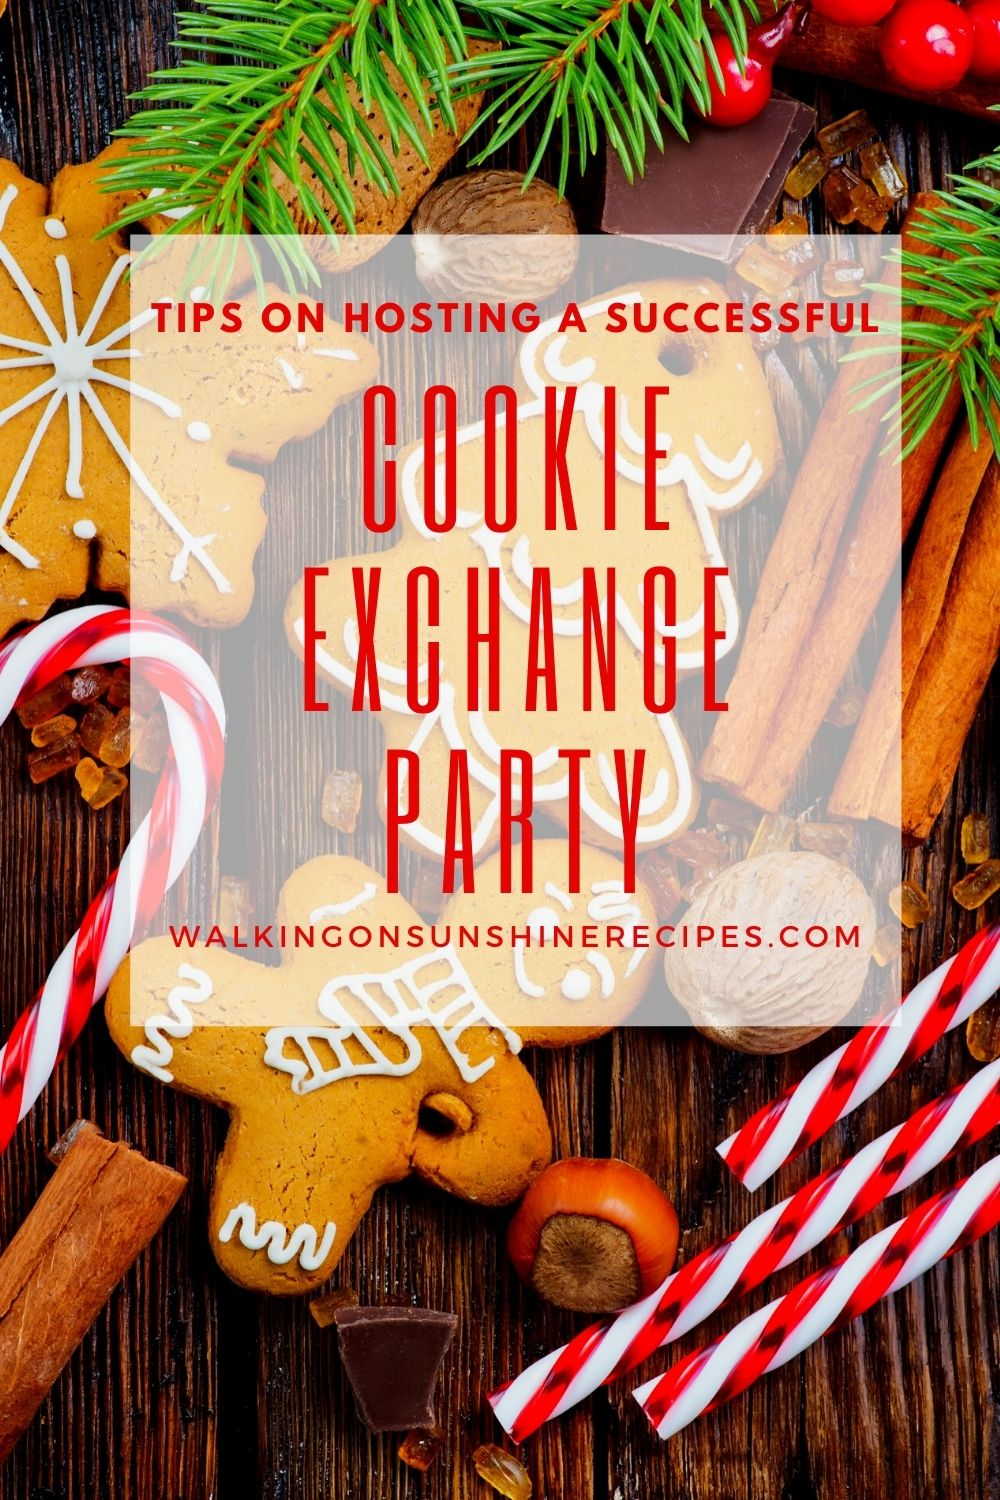 Christmas cookies with candy canes and cookie swap ideas.